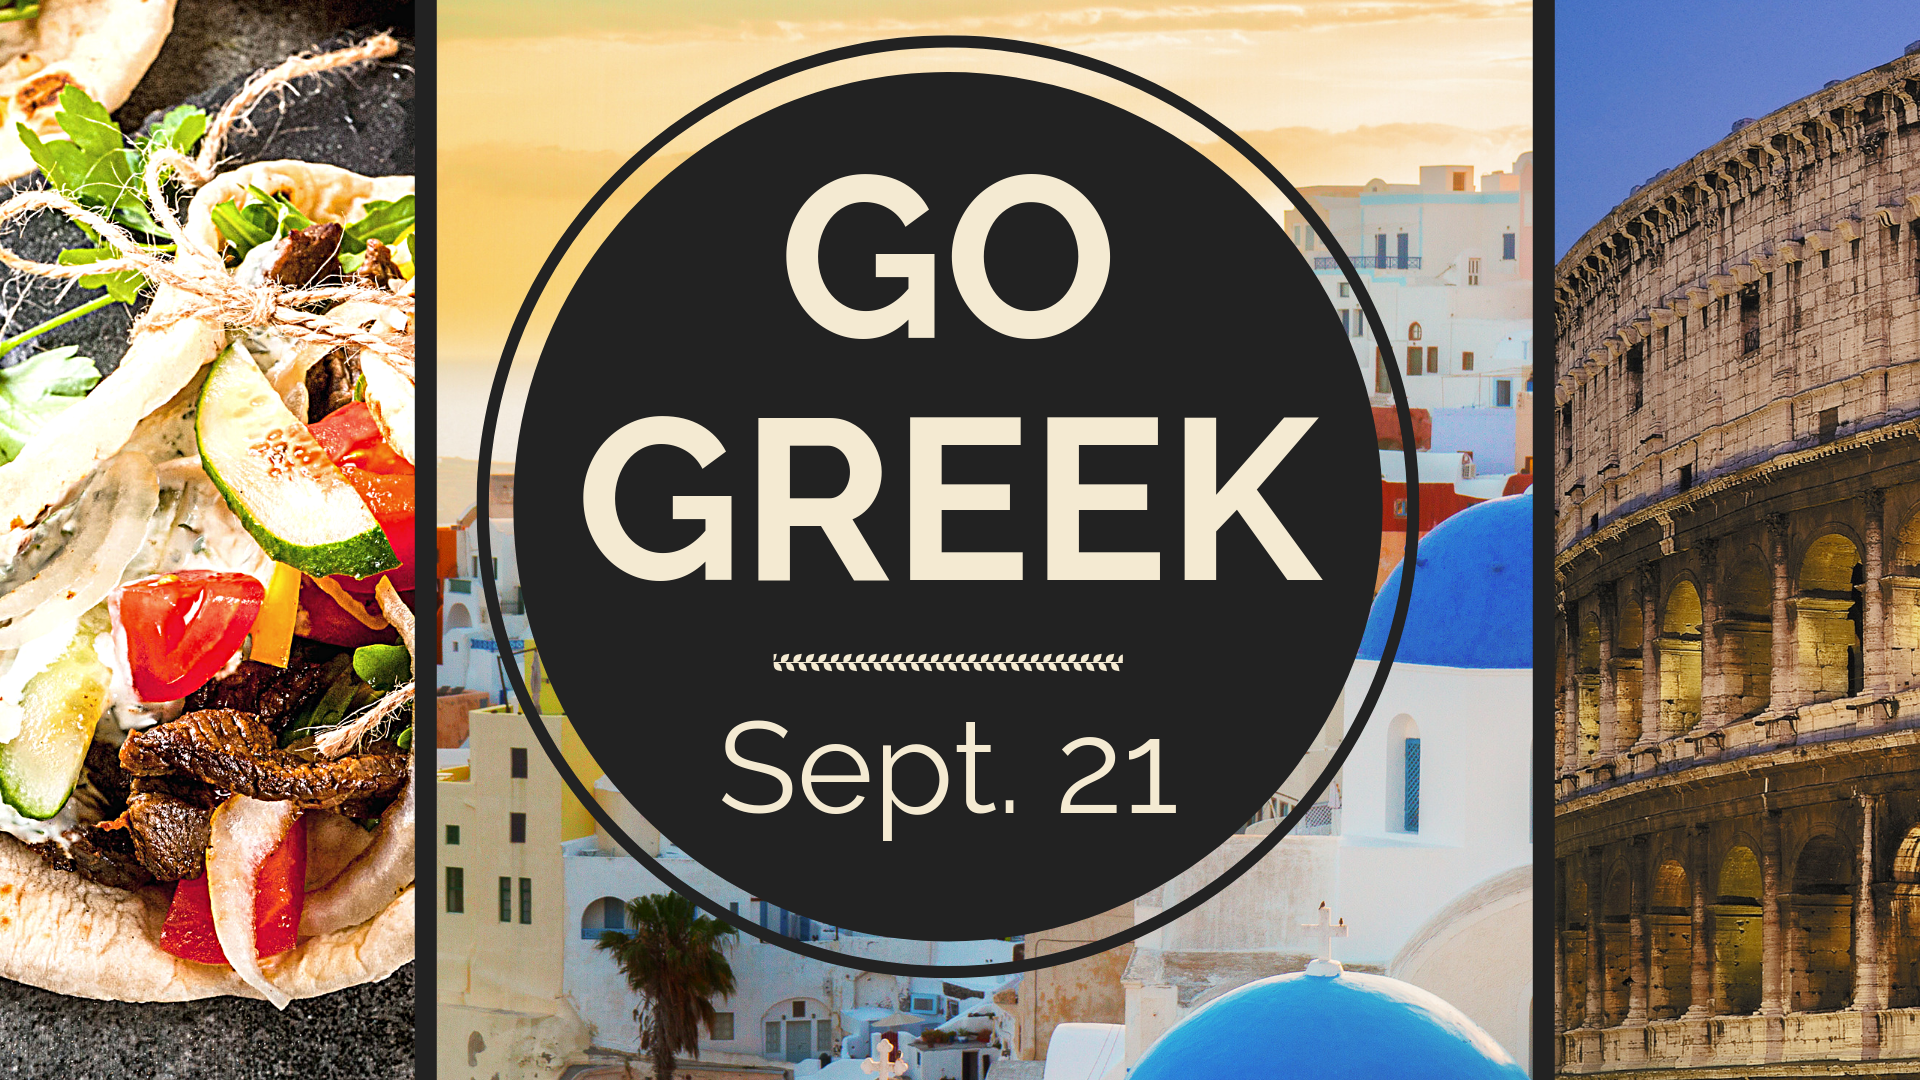 Copy of GO GREEK image